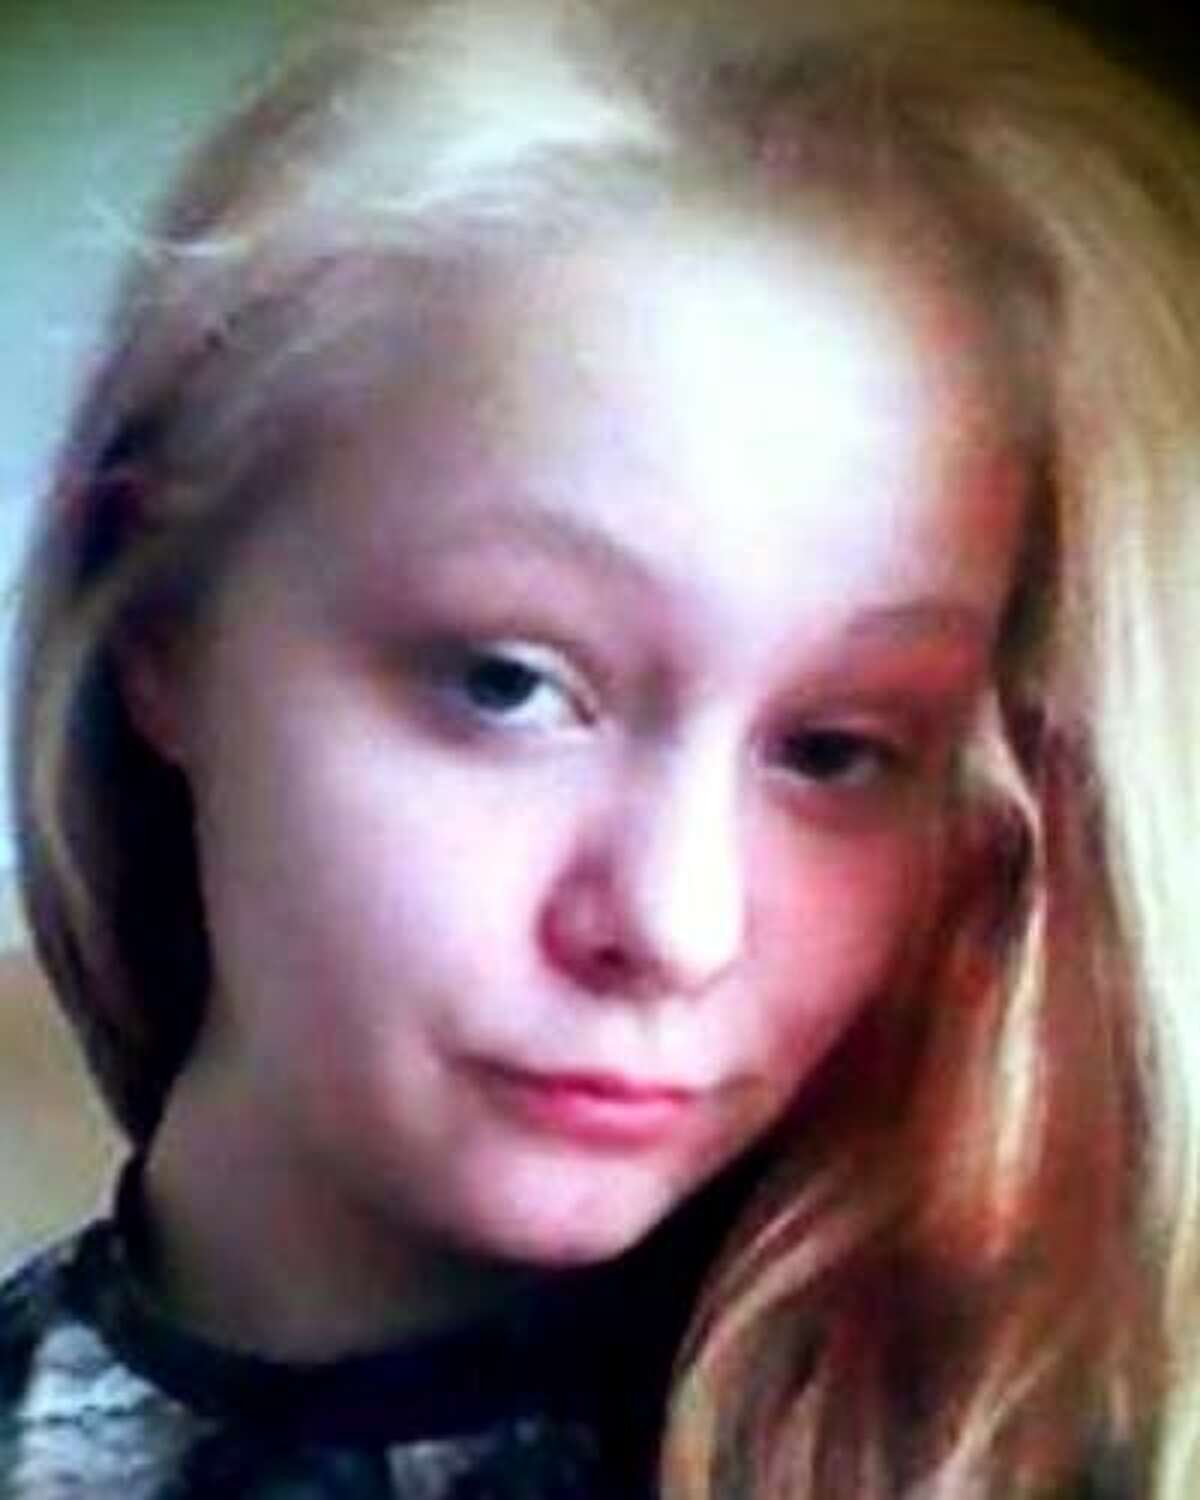 Christina Shilt: Born Nov 14, 1997 Missing Since: May 29, 2014 Missing From: San Antonio, TX Christina was last seen on May 29, 2014. Her ears are pierced and she may have dyed her hair brown. Christina may go by the nickname Chrissy.